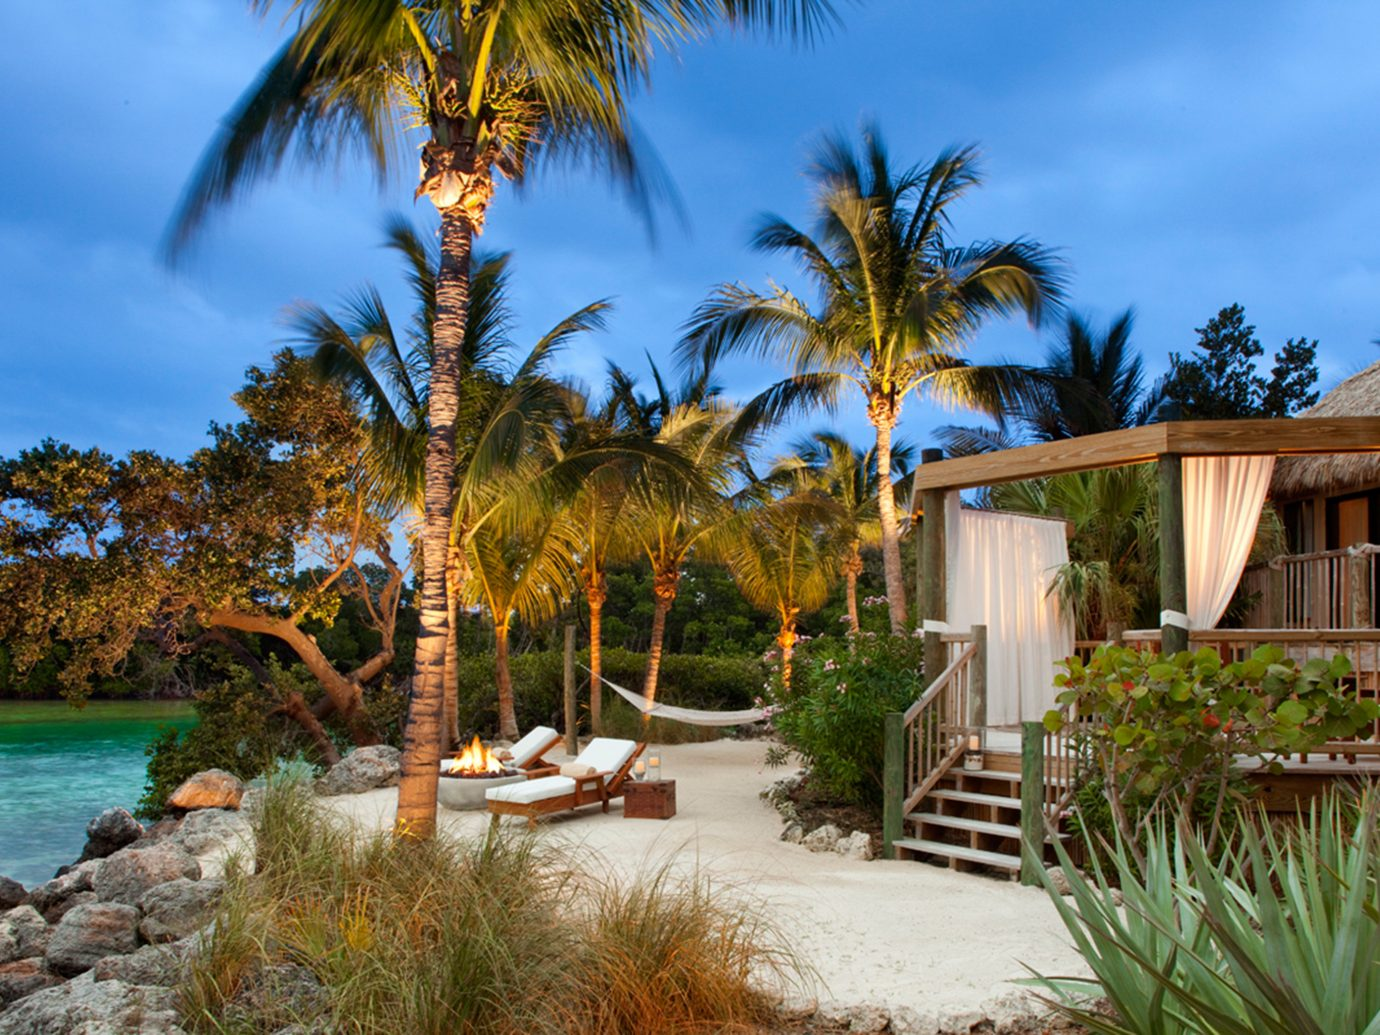 Beach Beachfront Hotels Island Outdoors Resort Romance Romantic Trip Ideas Waterfront tree outdoor sky palm property estate vacation arecales Garden home real estate palm family Villa plant shore surrounded